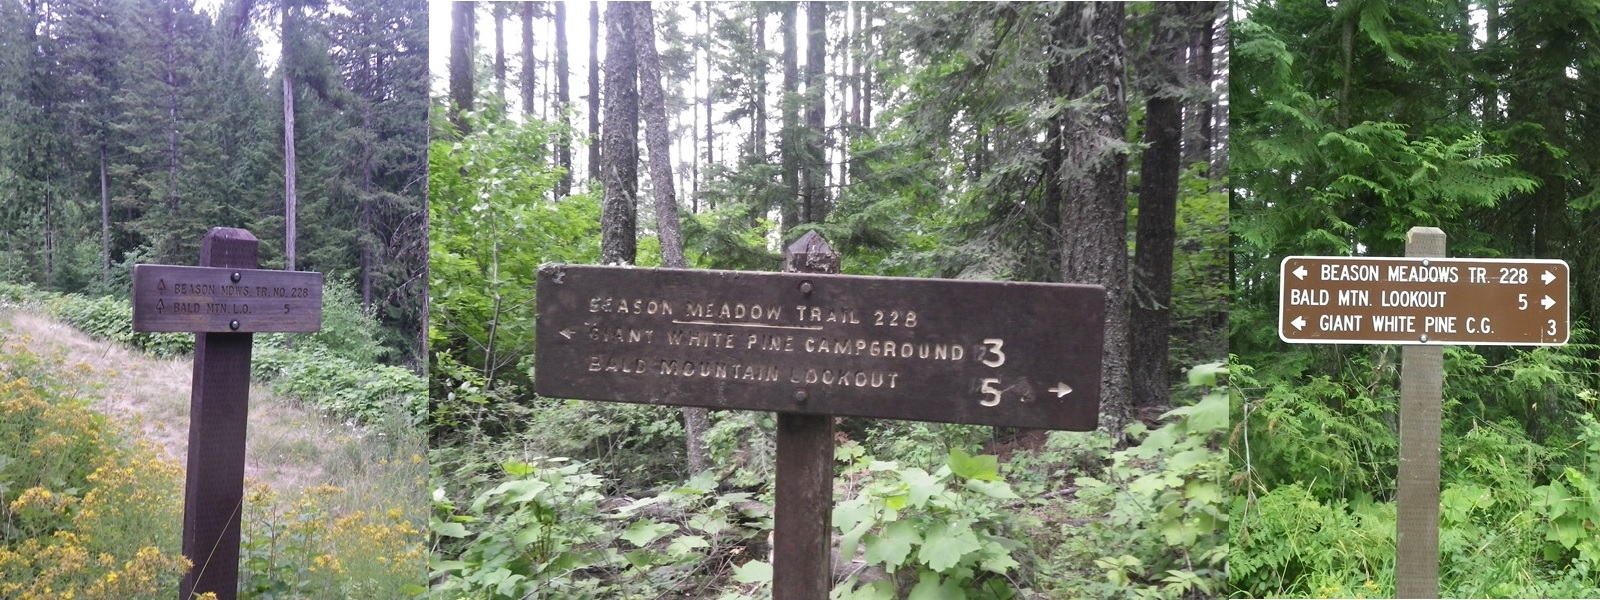 Bald Mountain Lookout 5 miles signs